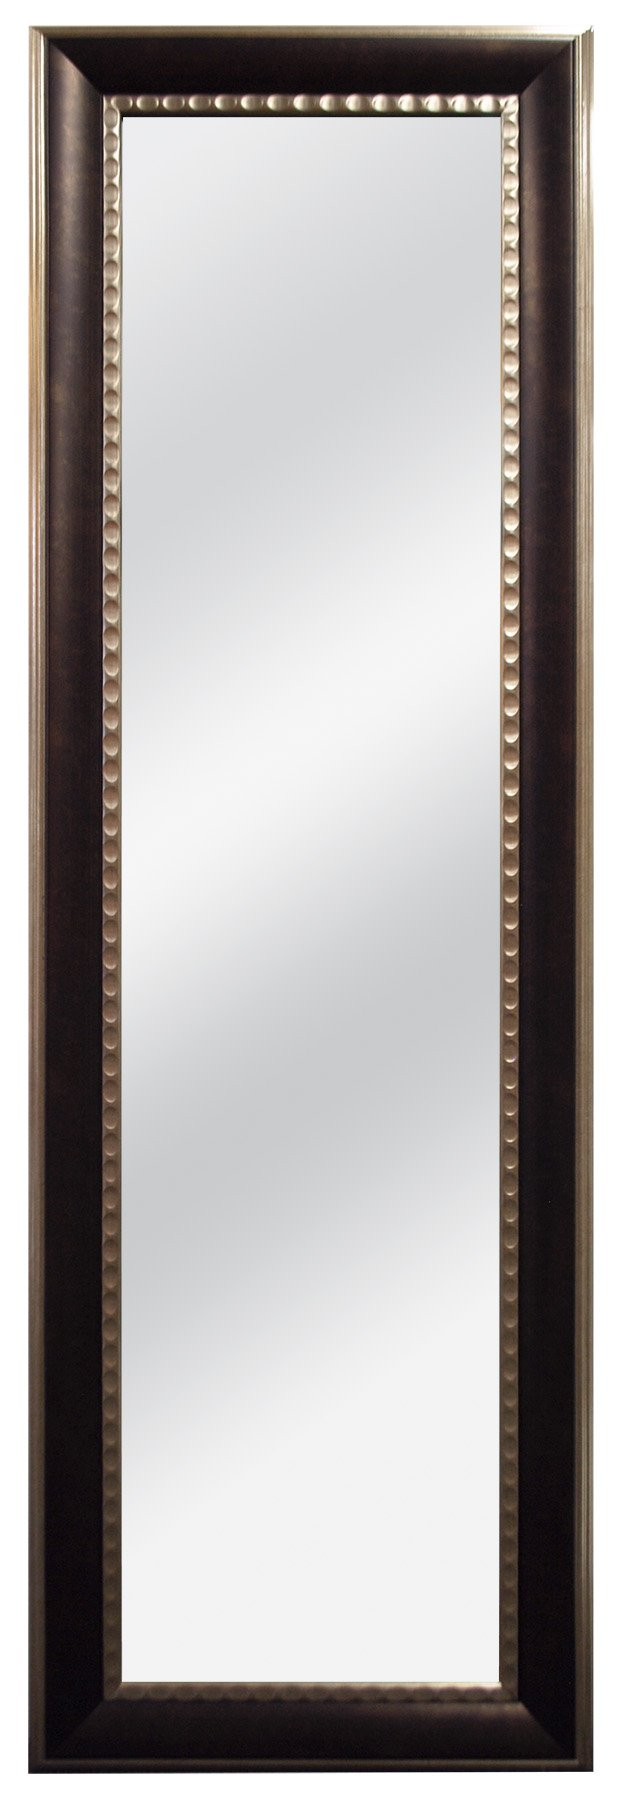 MCS 12x48 Inch Over the Door Two Toned Mirror, 18x54 Inch Overall Size, Bronze (47705)